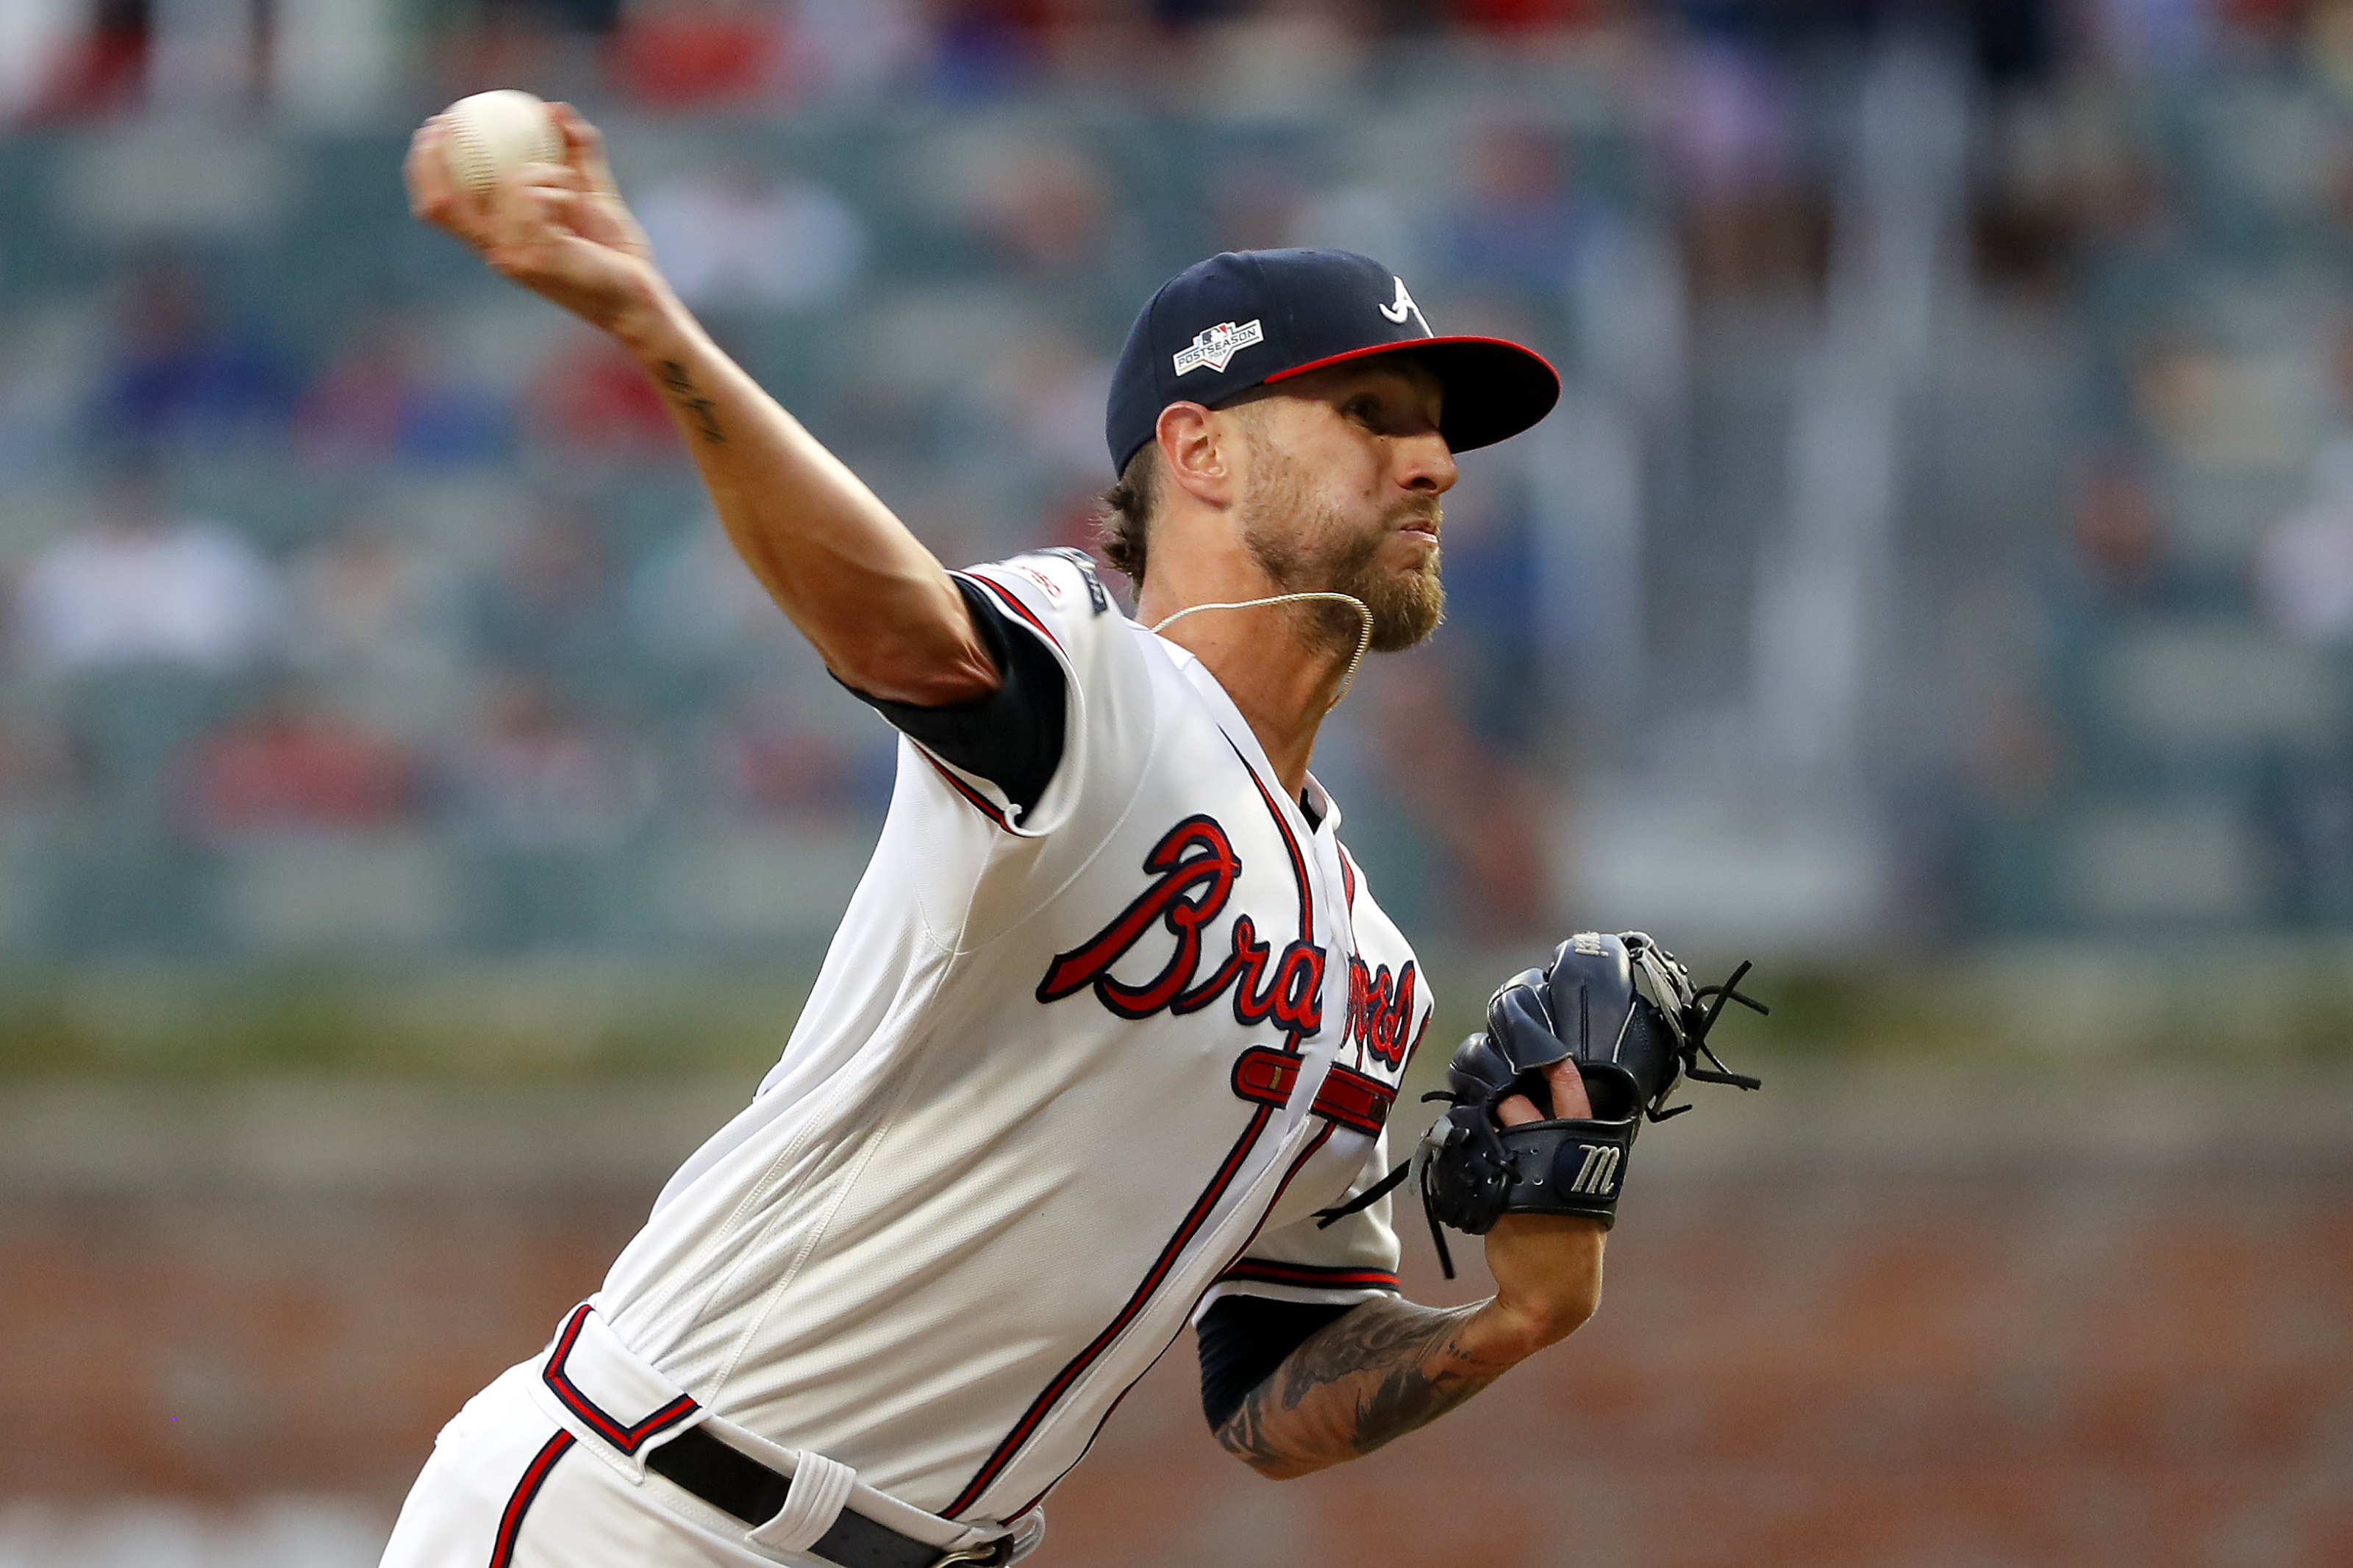 How Did Atlanta Braves Reliever Shane Greene Become The Villain Page 3